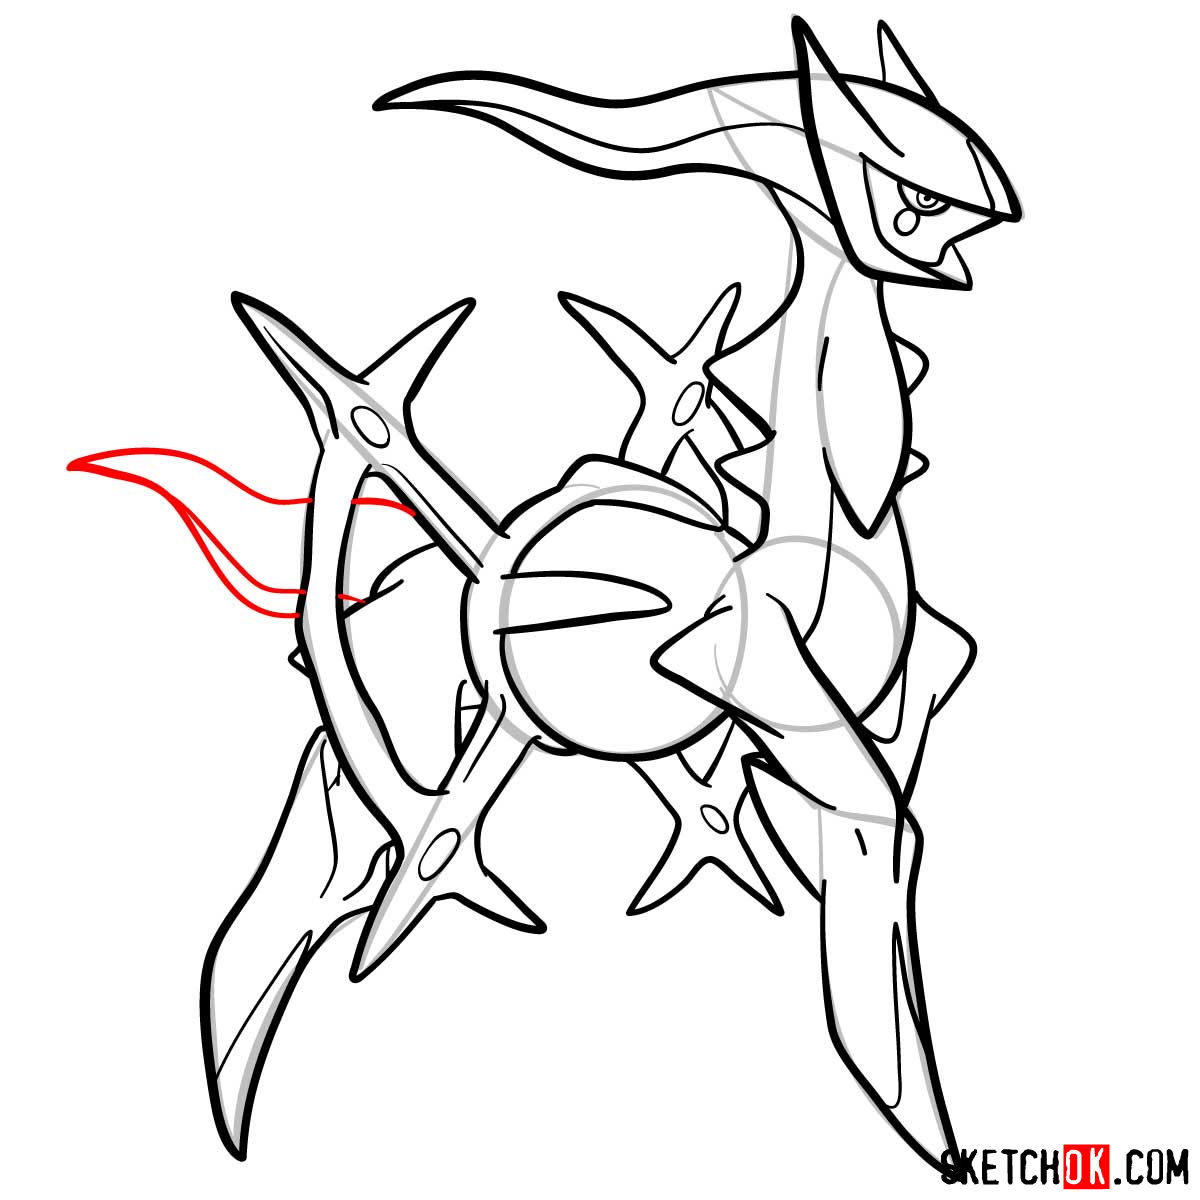 How to draw Arceus Pokemon - step 16